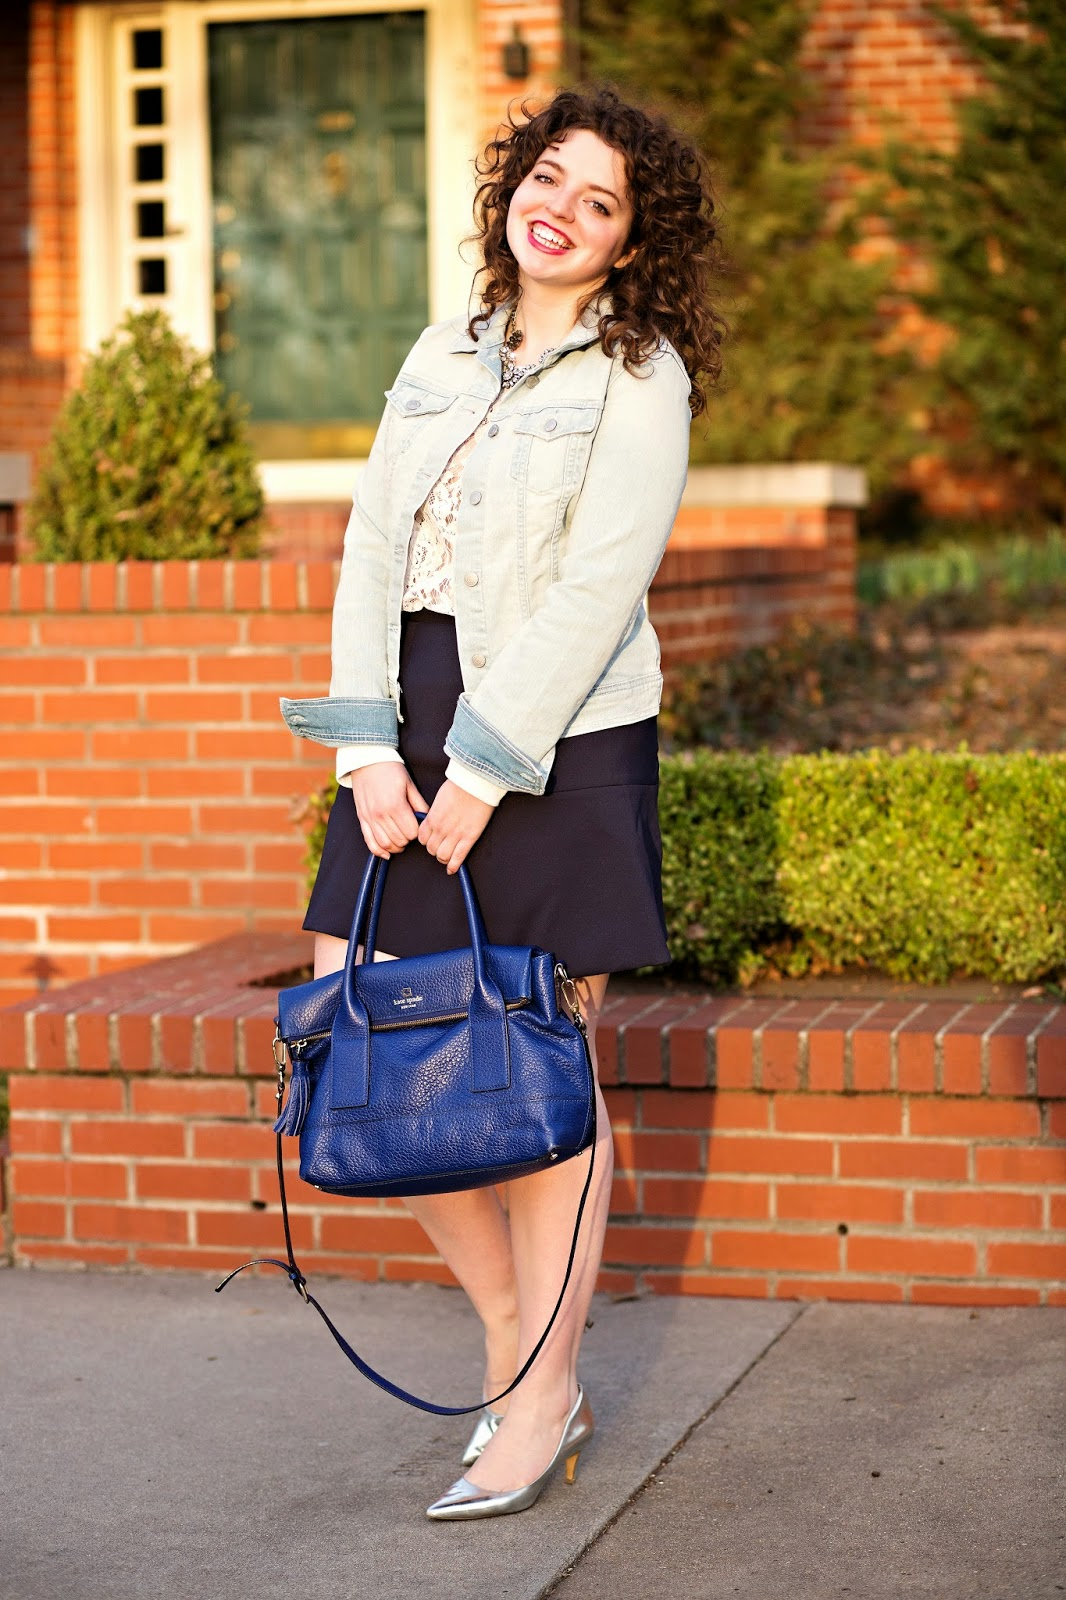 Denim jacket casual dress outfit for spring